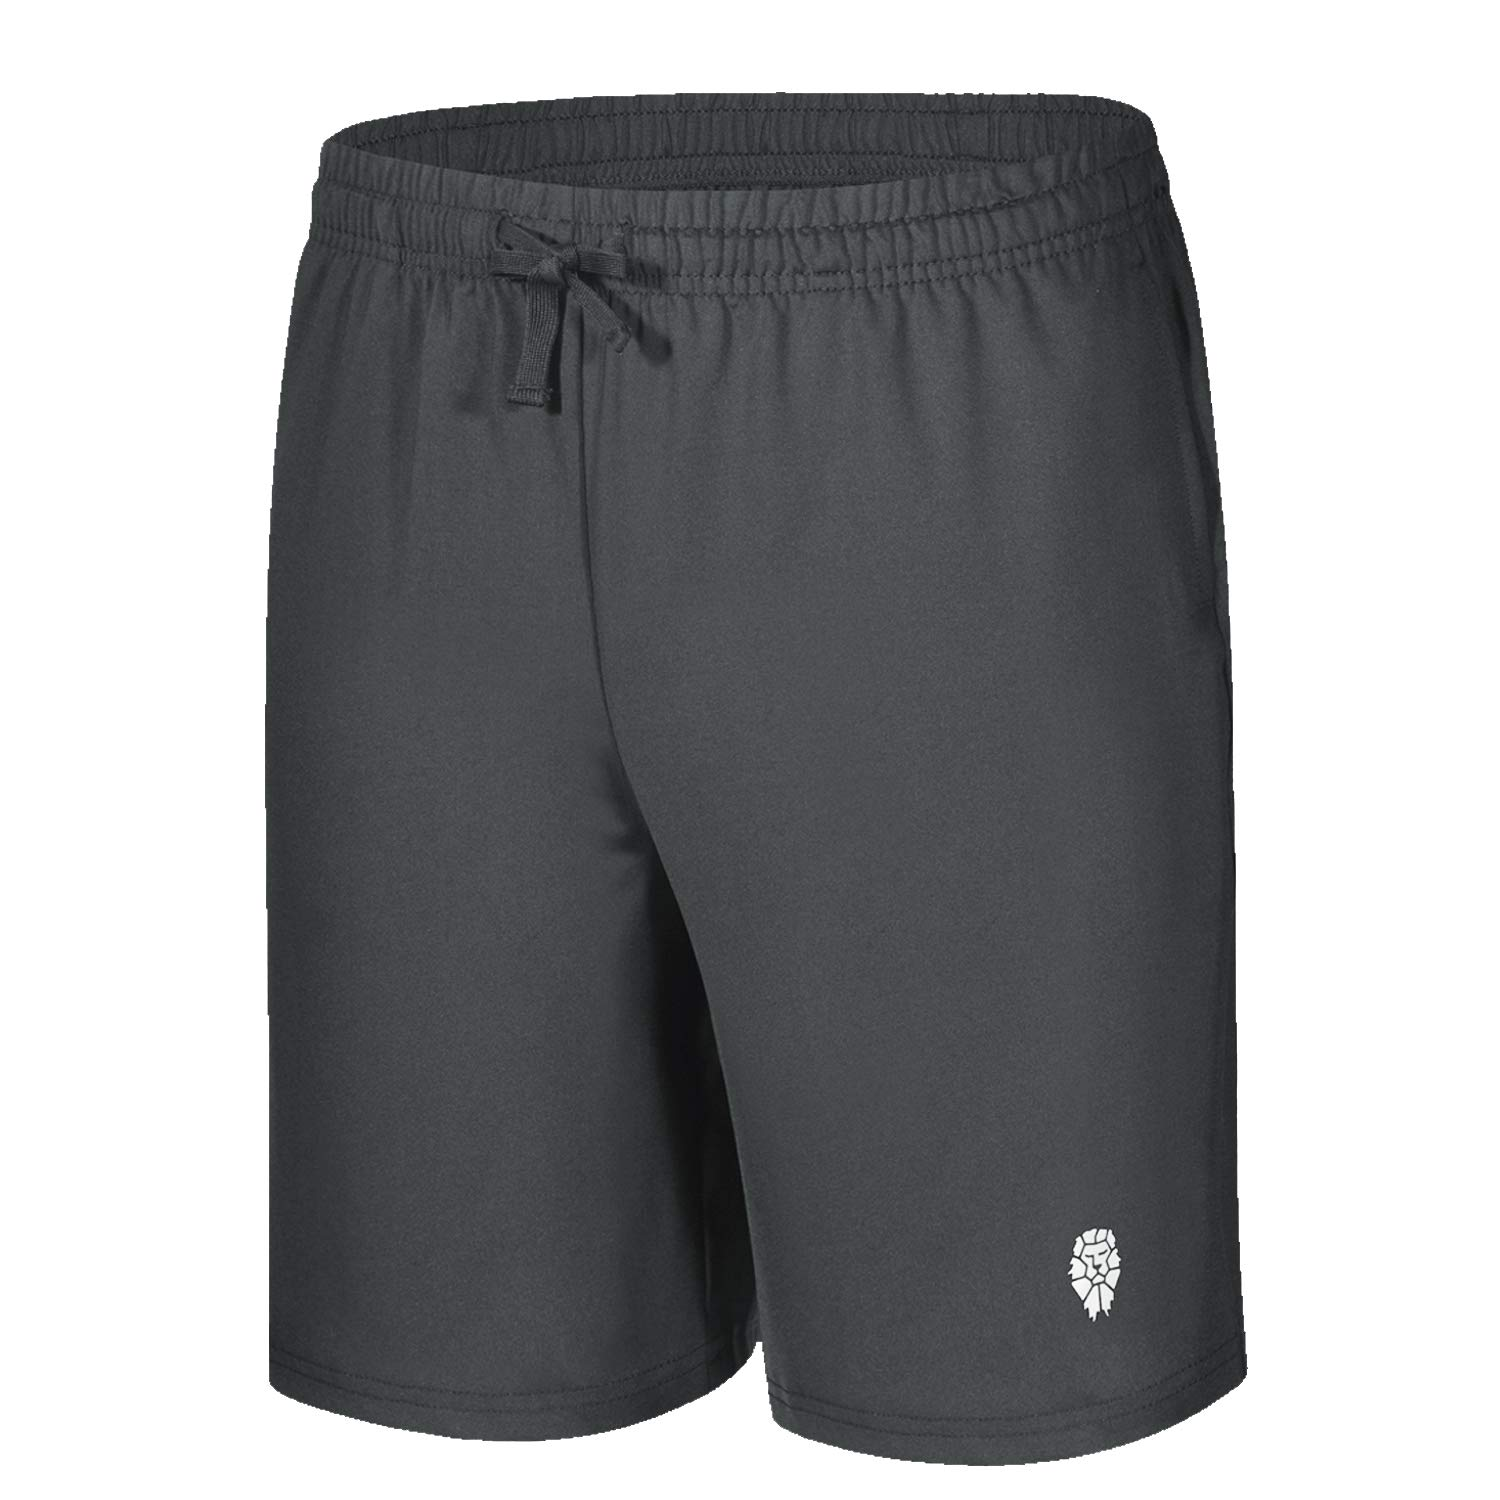 PIQIDIG Youth Boys' Running Athletic Shorts Quick Dry Performance Sports Shorts with Pockets Grey S by PIQIDIG